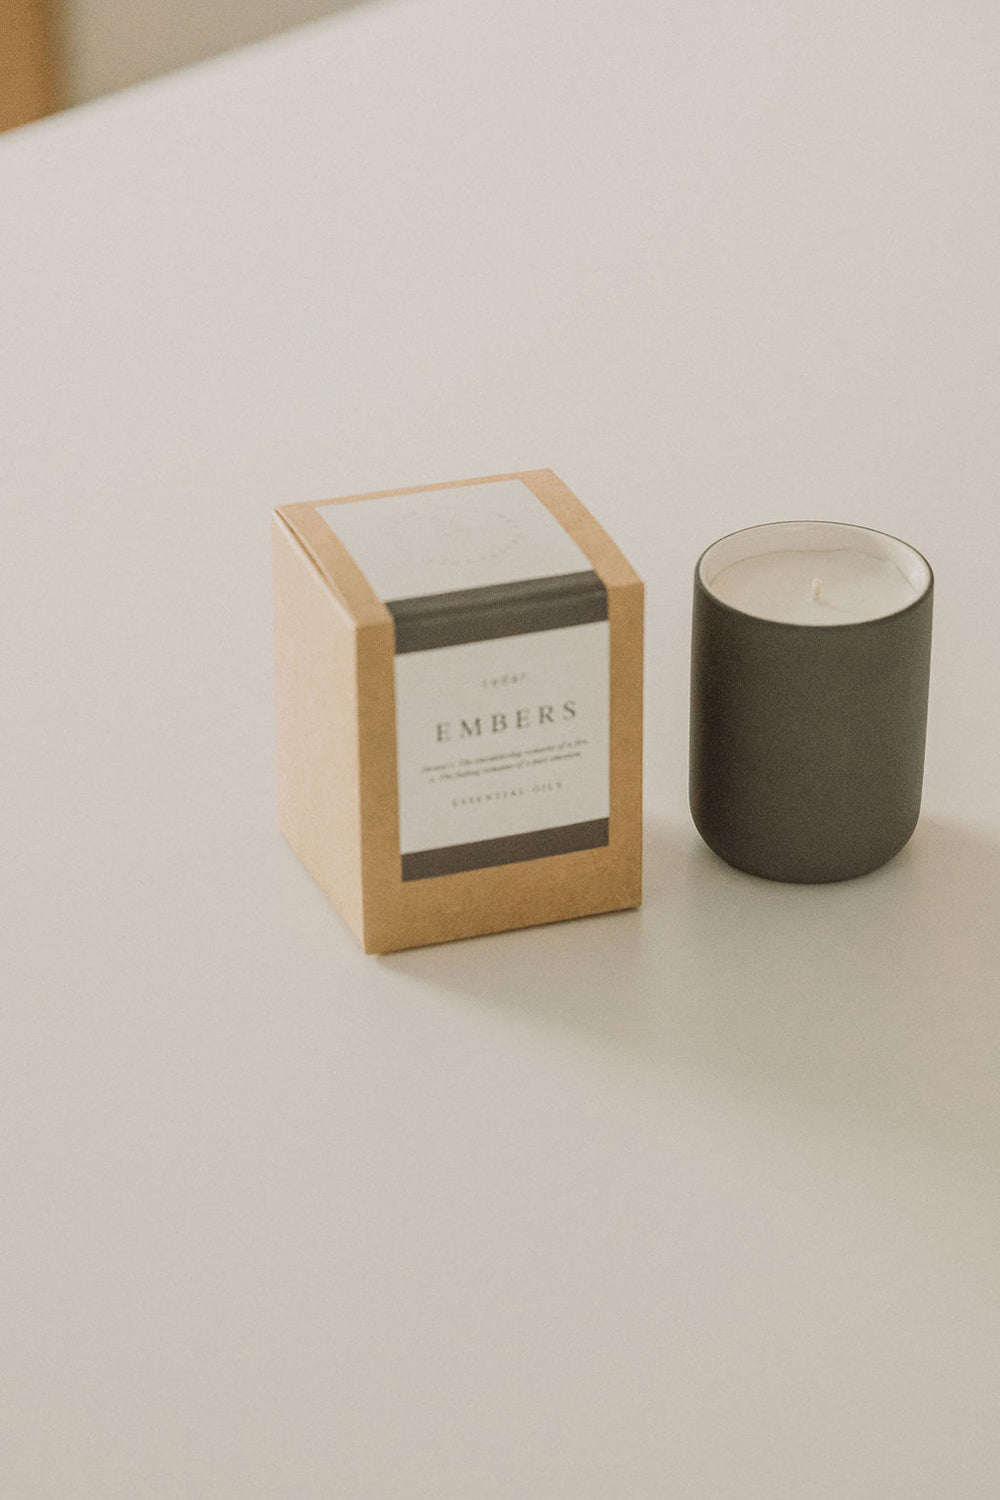 Cedar Lifestyle |  Embers Candle - 100% Natural - Reusable Vessel